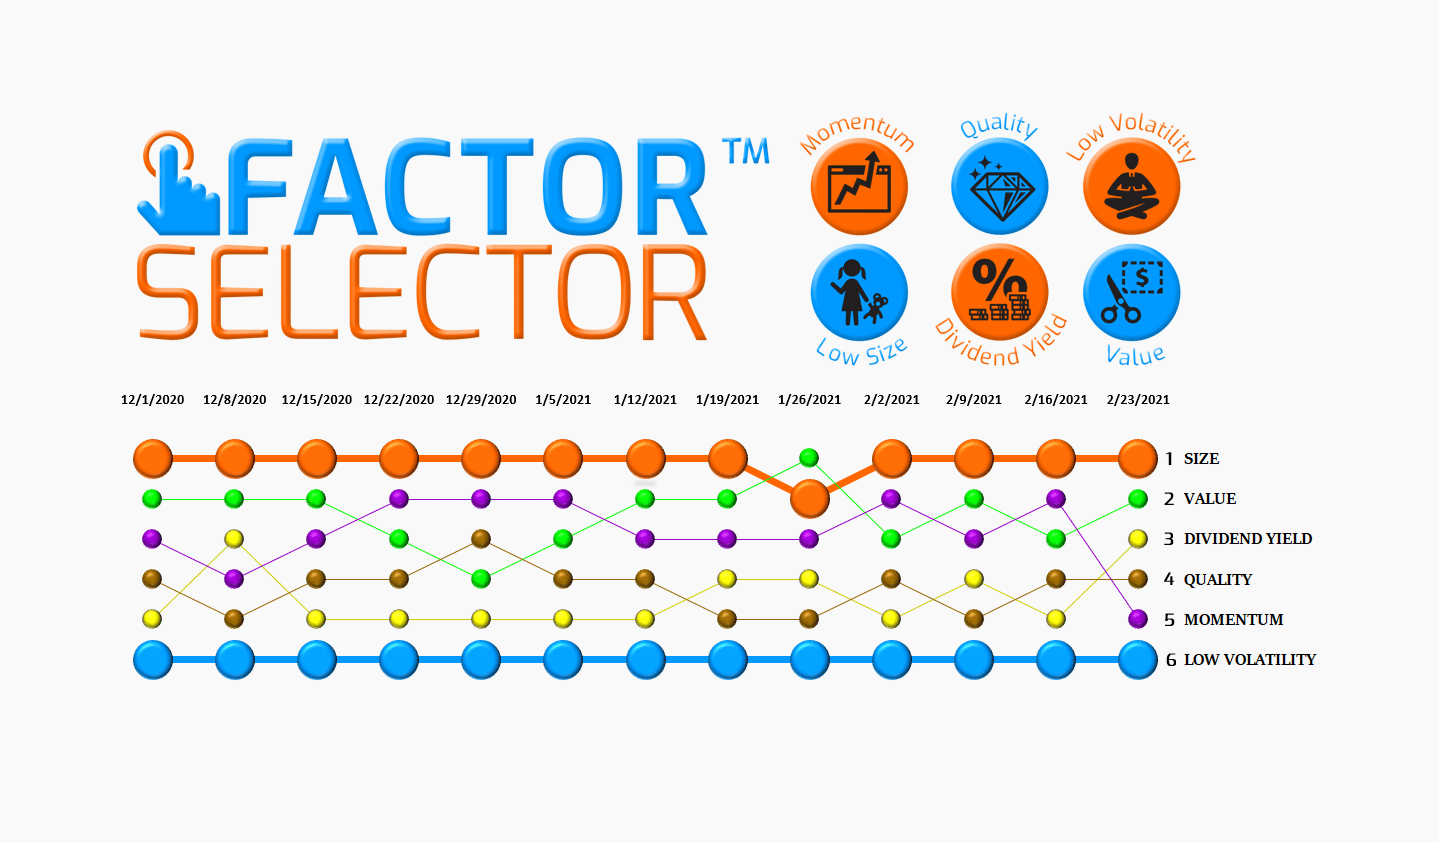 Factor Selector™  – 02/24/21 via @https://www.pinterest.com/market_scholars